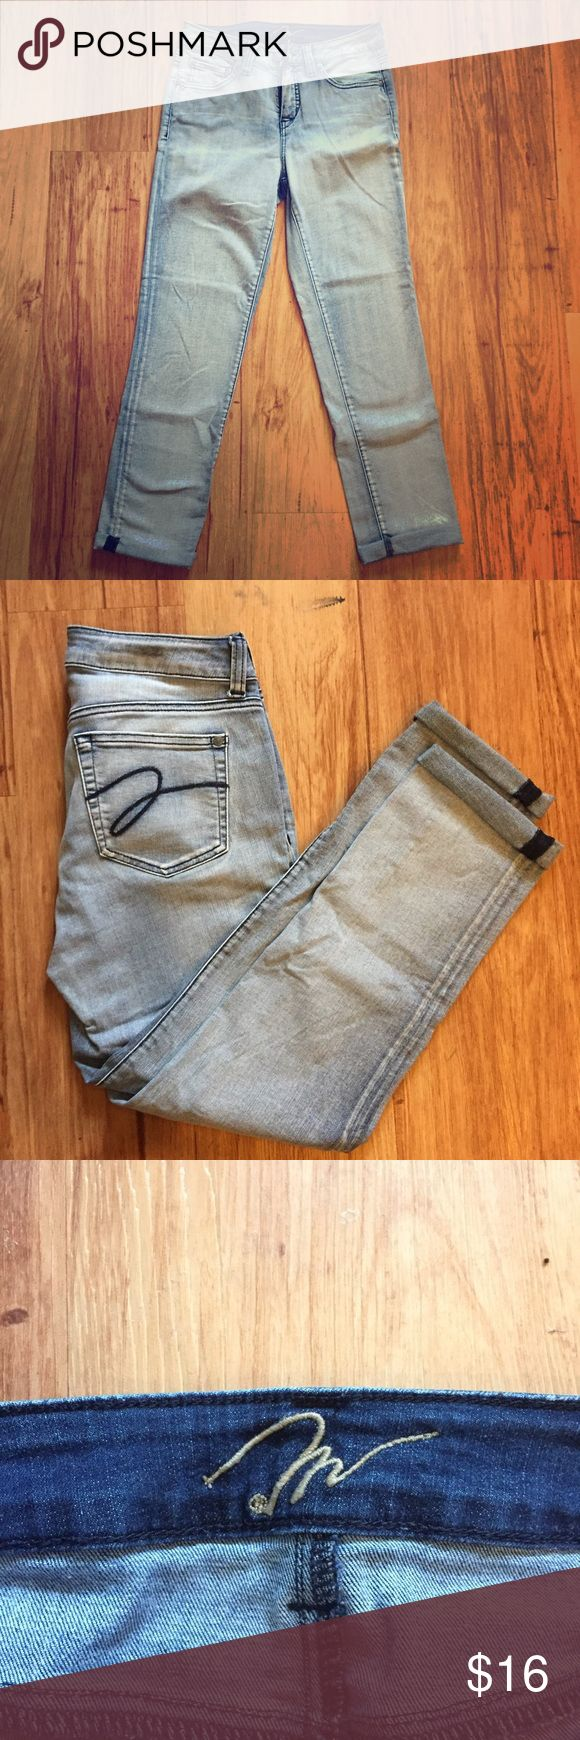 Light Wash Miraclebody Jeans Love these jeans!!! Only worn a few times. They look super cute rolled up with some ankle booties. 😊 Nordstrom Jeans Skinny